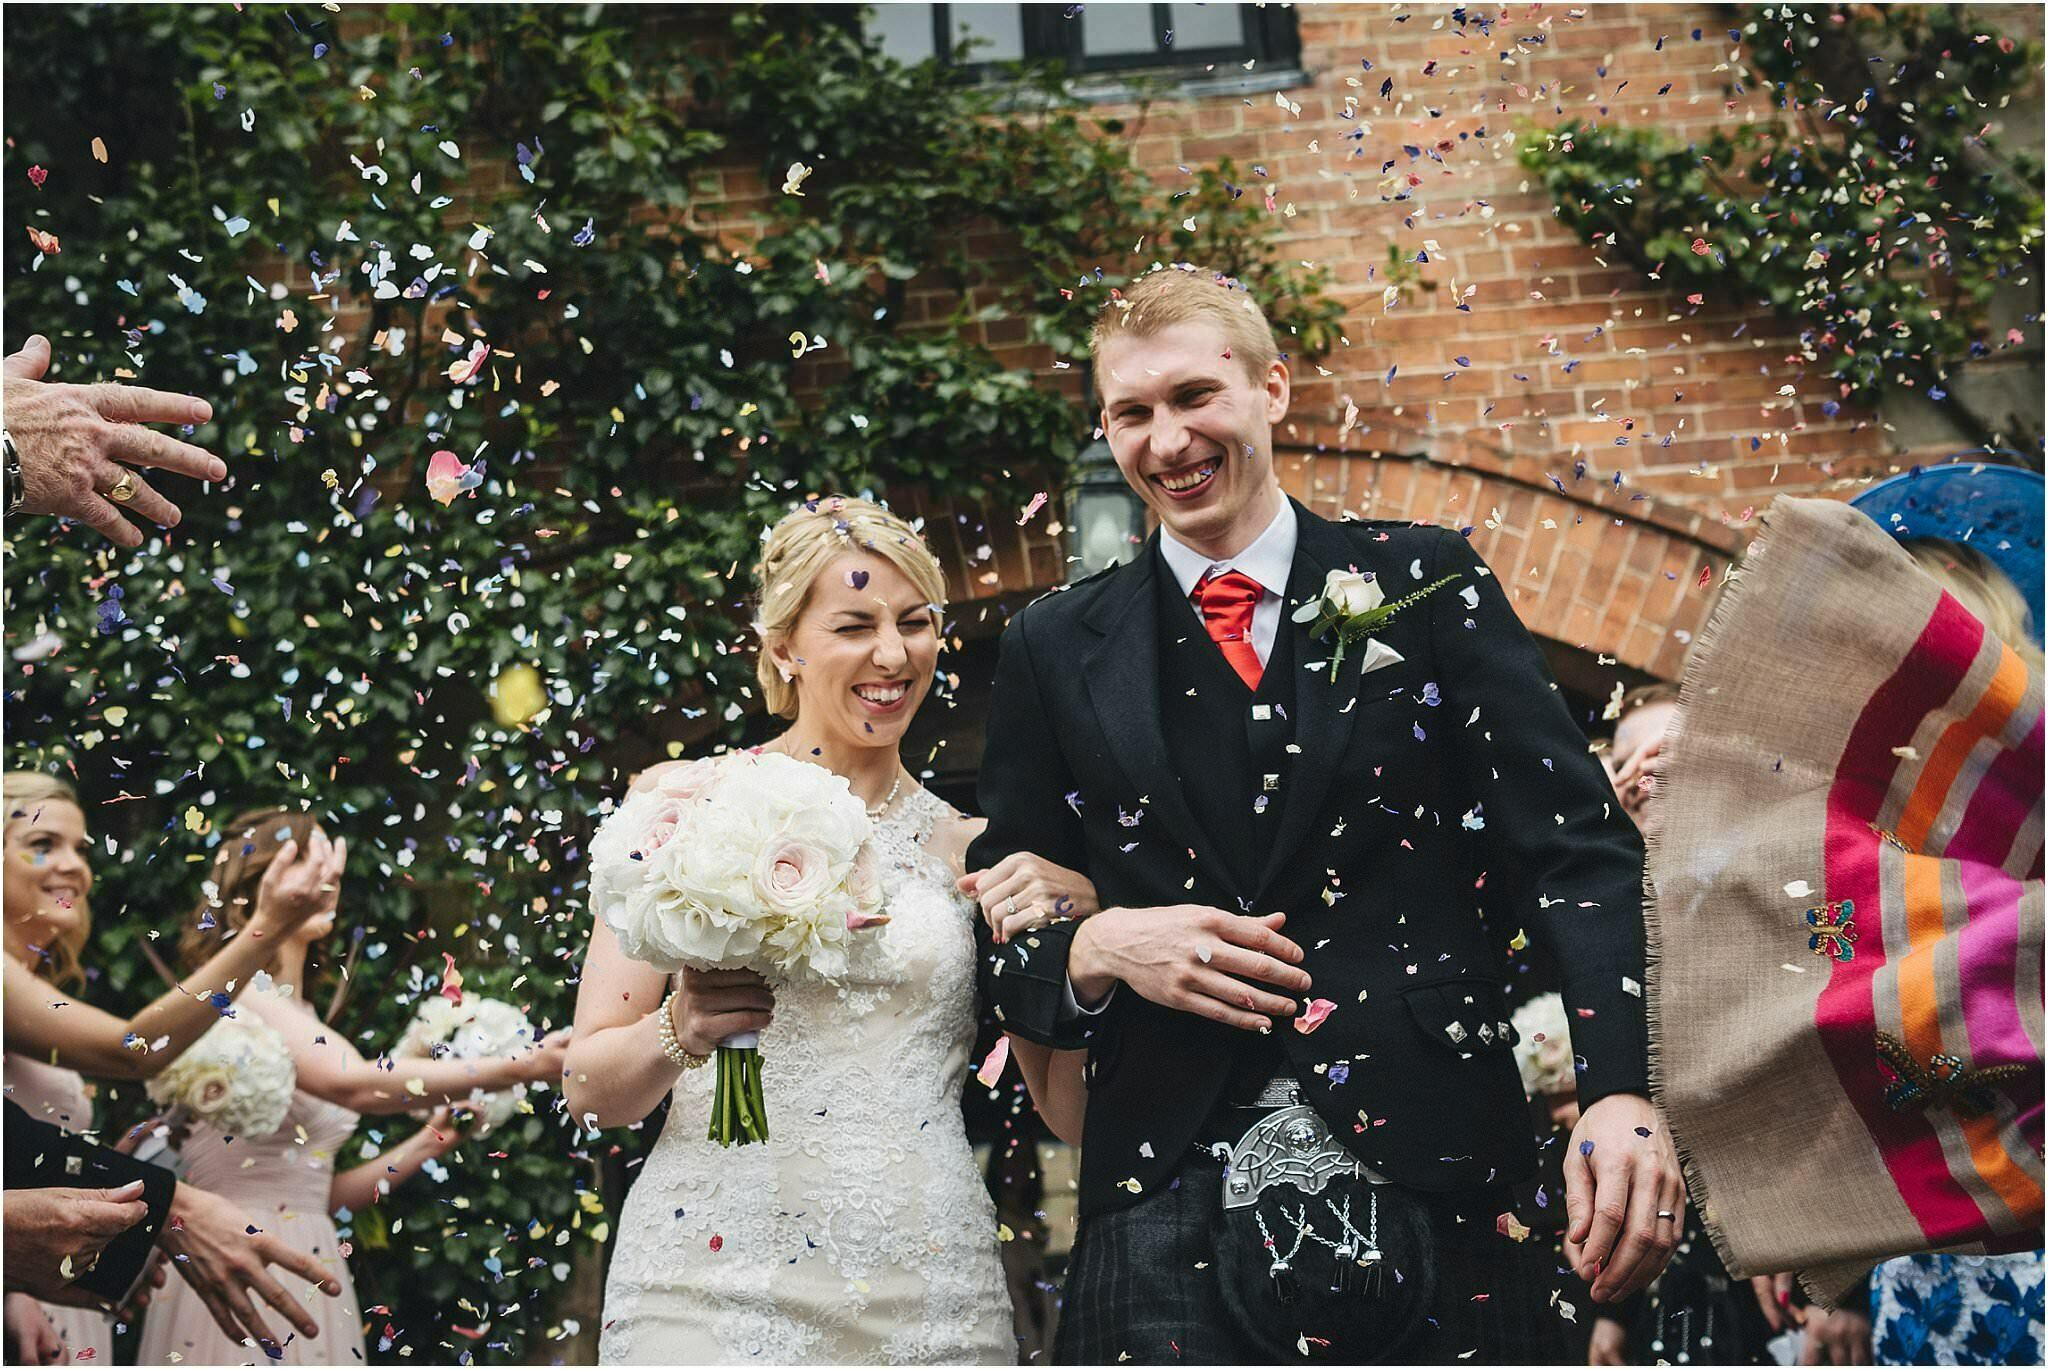 Brinsop wedding confetti